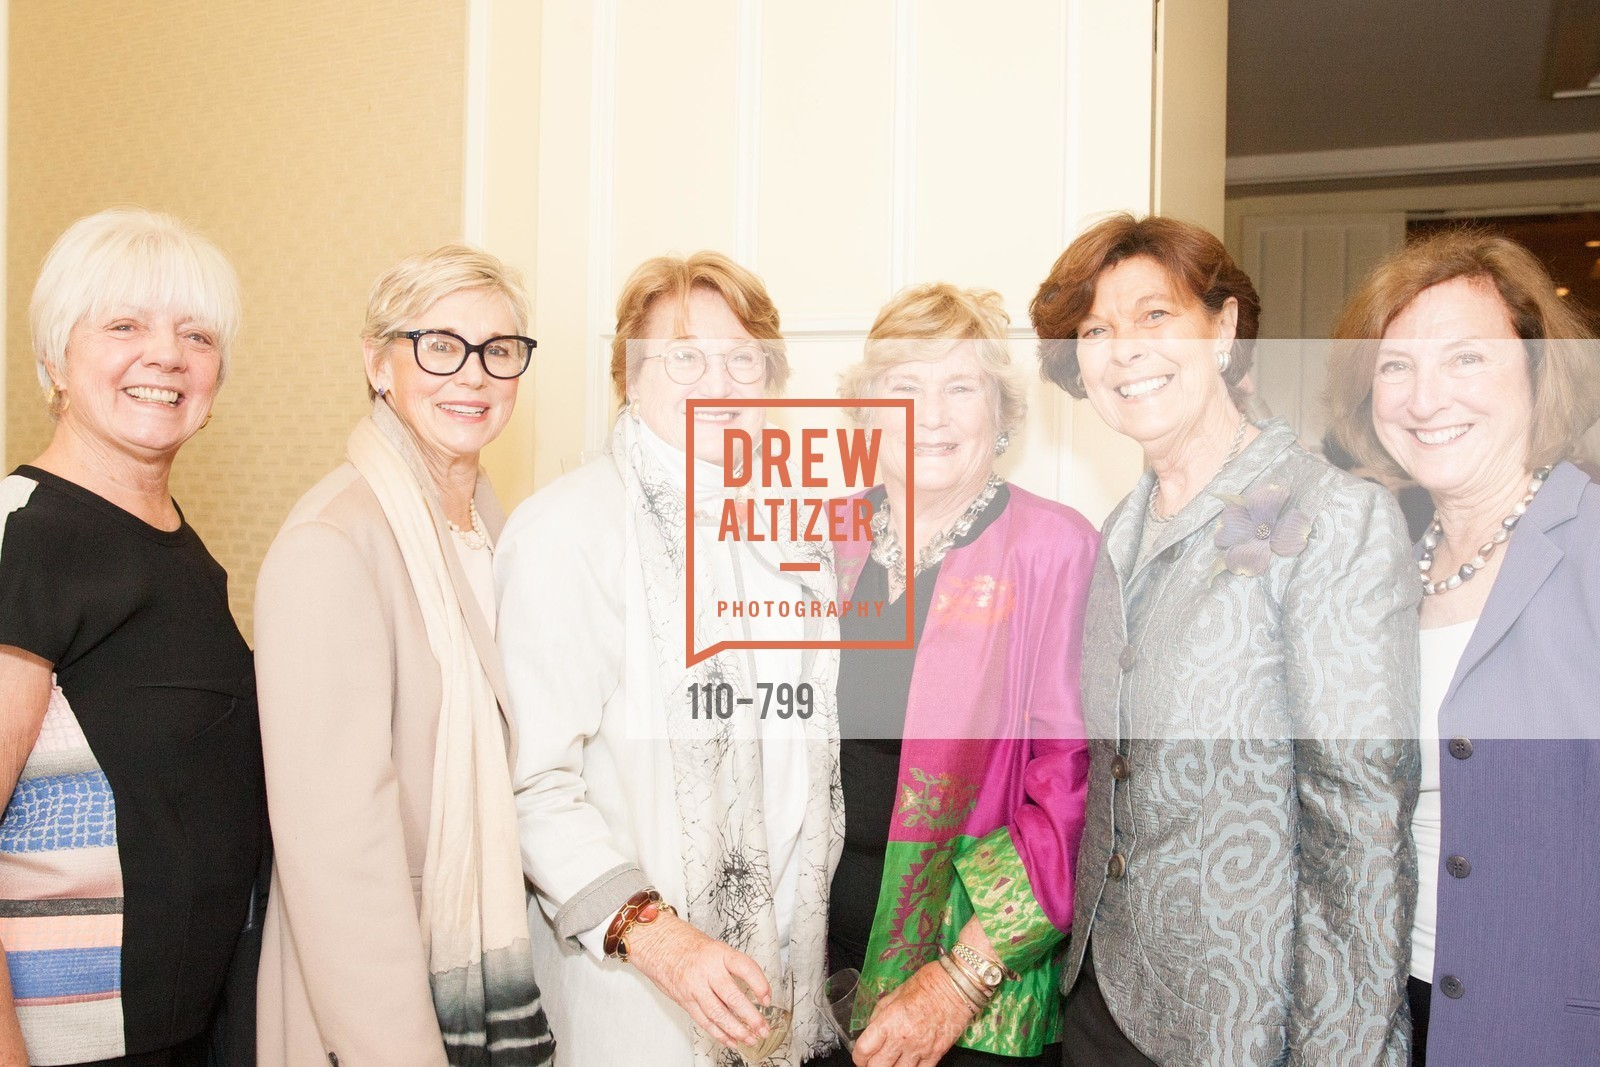 Mary Lou Dauray, Susy Damner, Susan Gantner, Mary Callendar, COMPASSION & CHOICES - Empowerment Luncheon, US, April 23rd, 2015,Drew Altizer, Drew Altizer Photography, full-service agency, private events, San Francisco photographer, photographer california